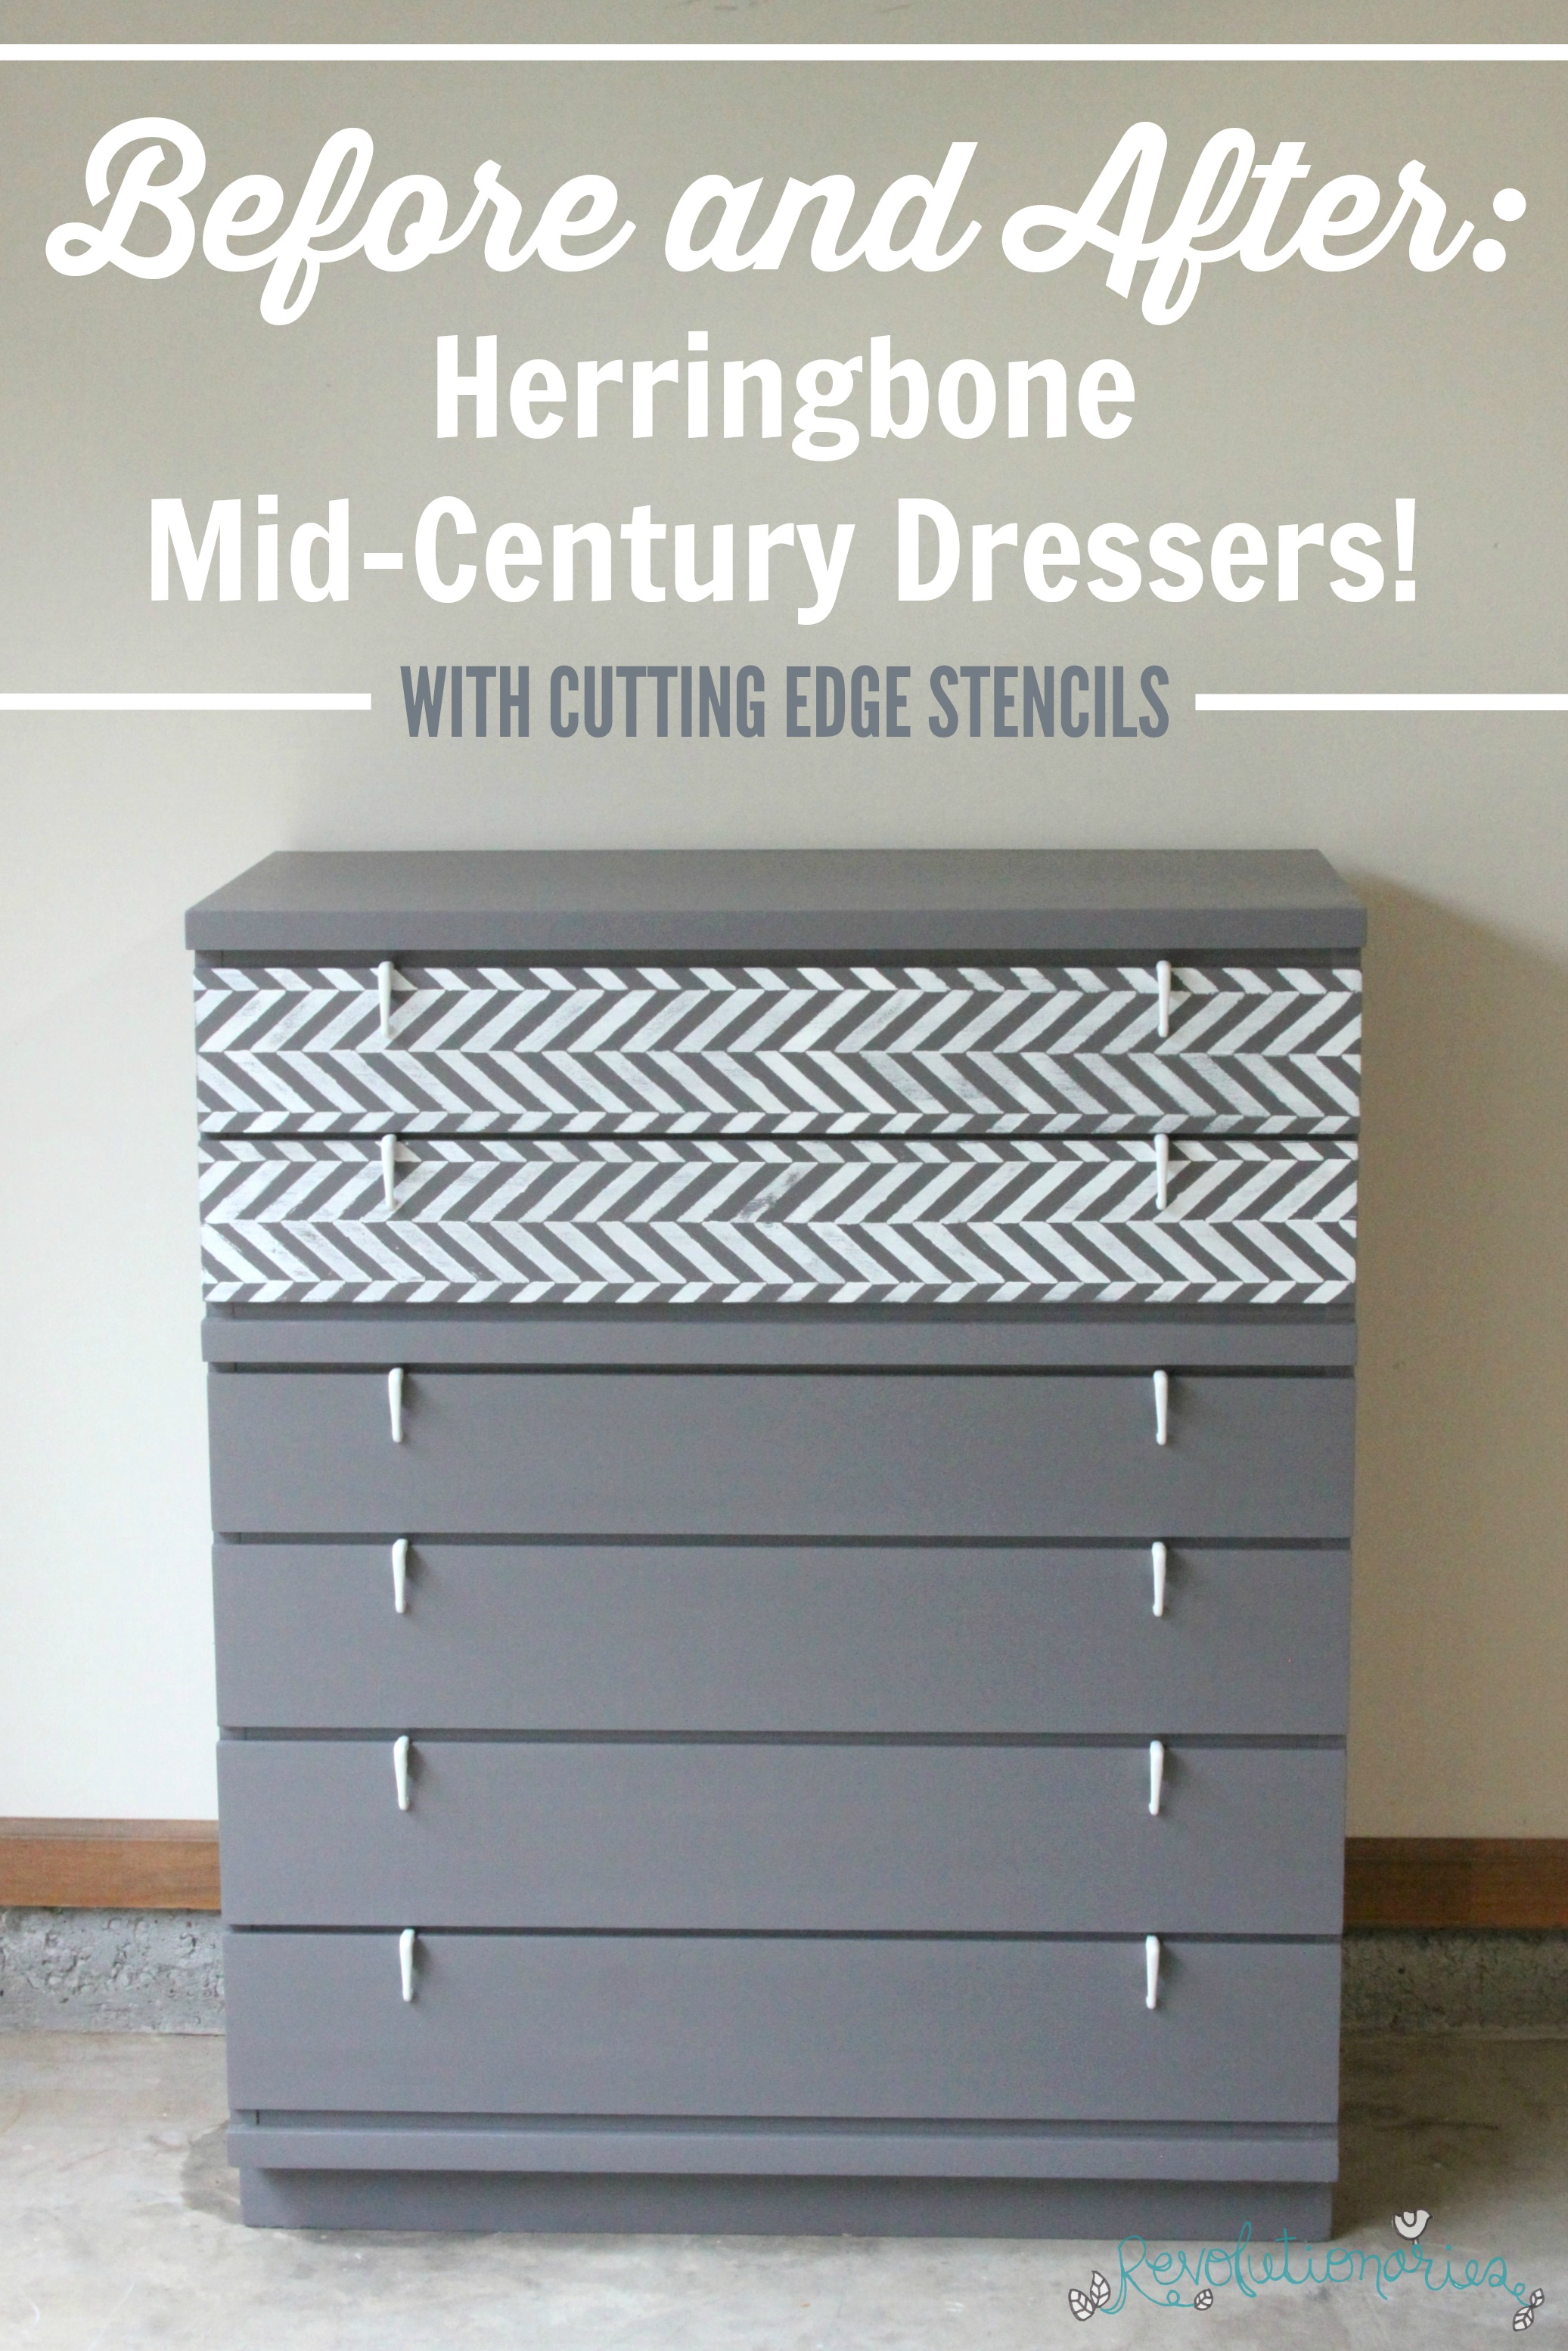 before-and-after-herringbone-mid-century-dressers-12.jpg